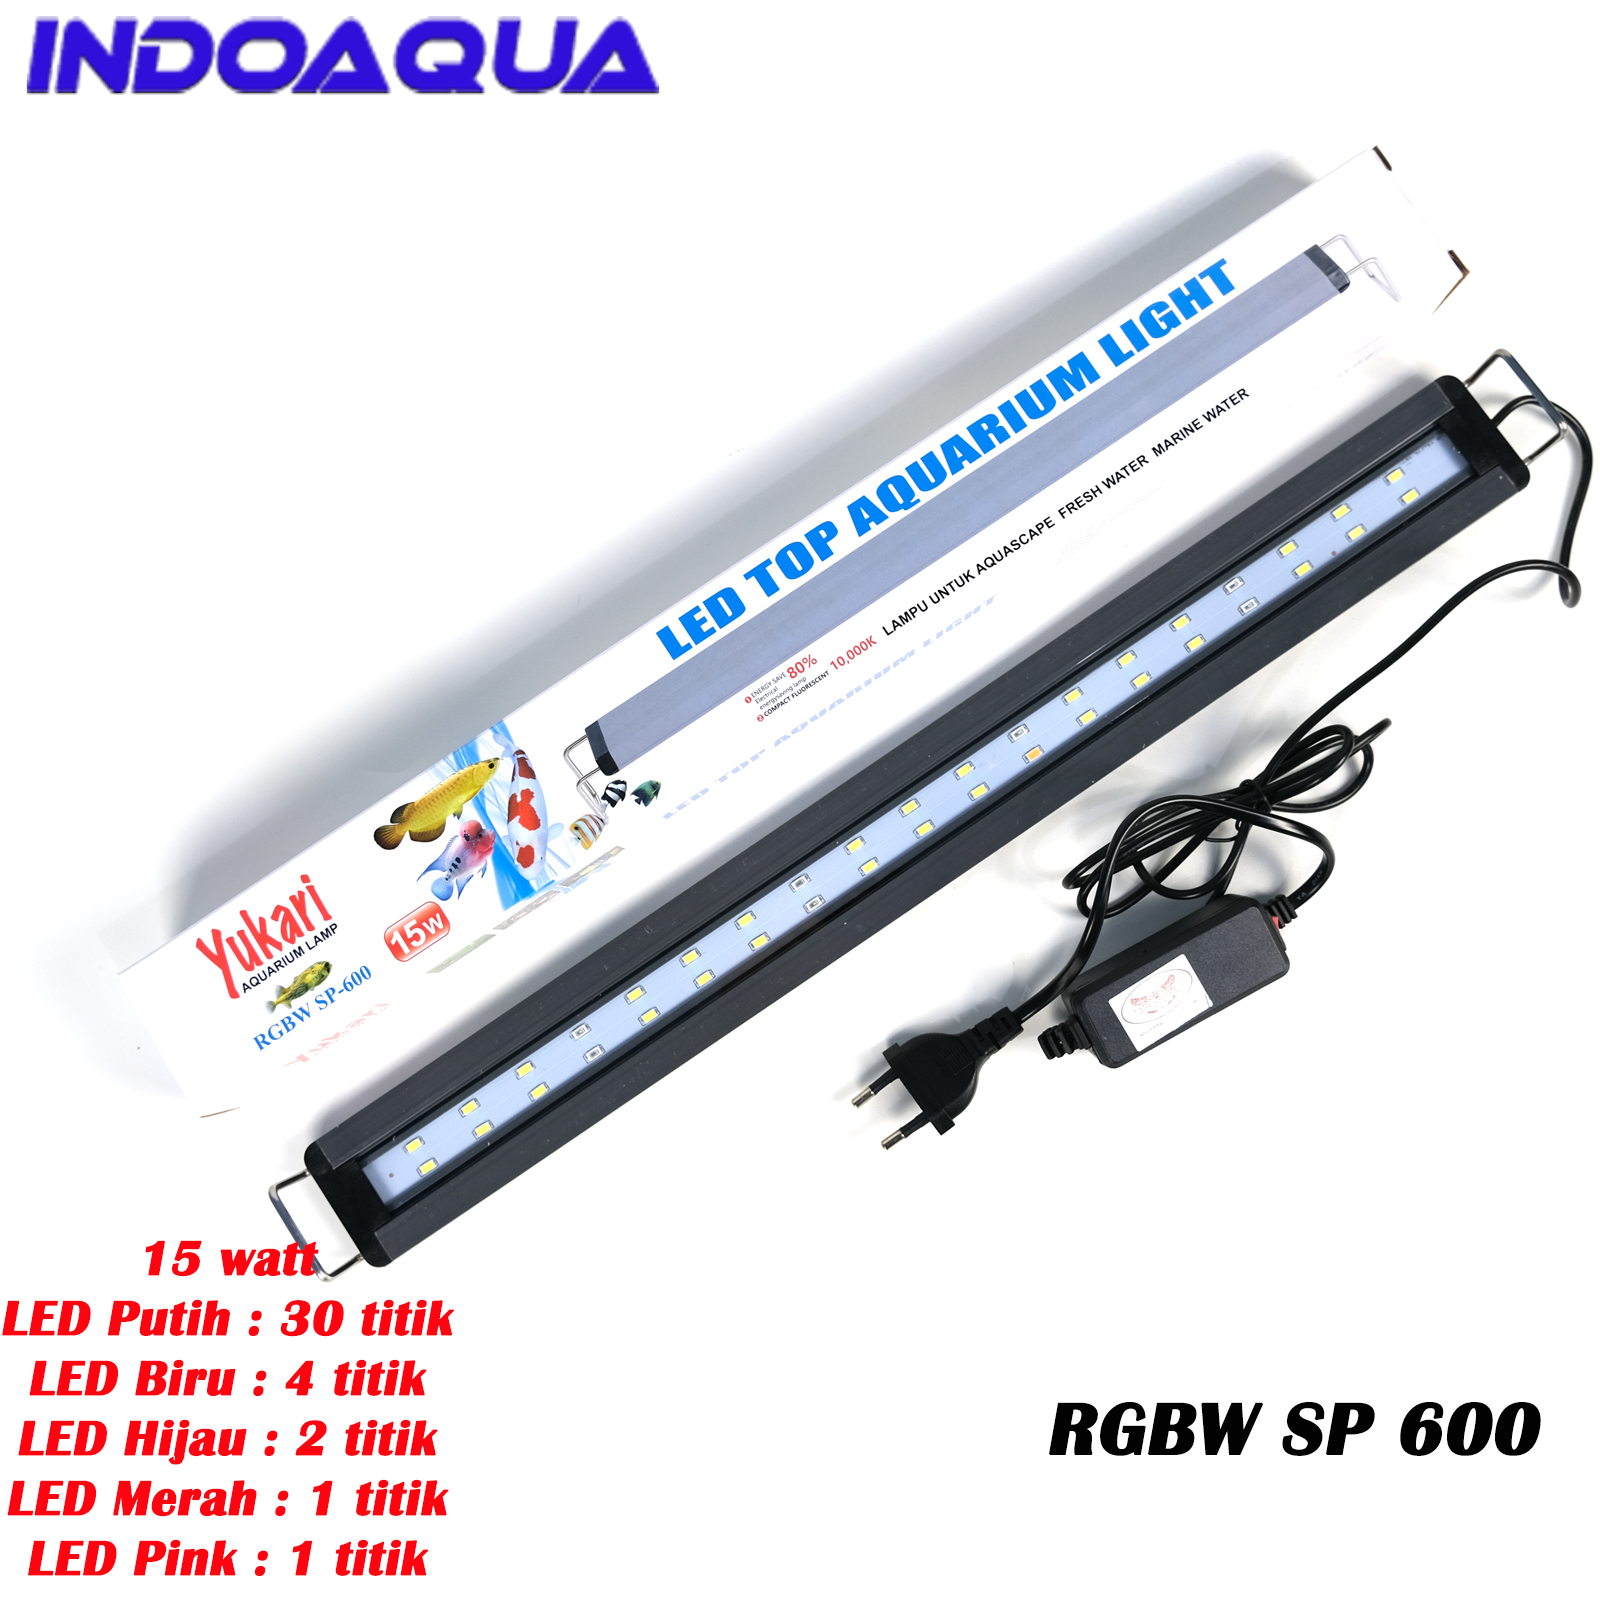 INDOAQUA - Lampu LED Aquascape RGBW Lampu Aquarium RGBW For Tank 50 60 cm